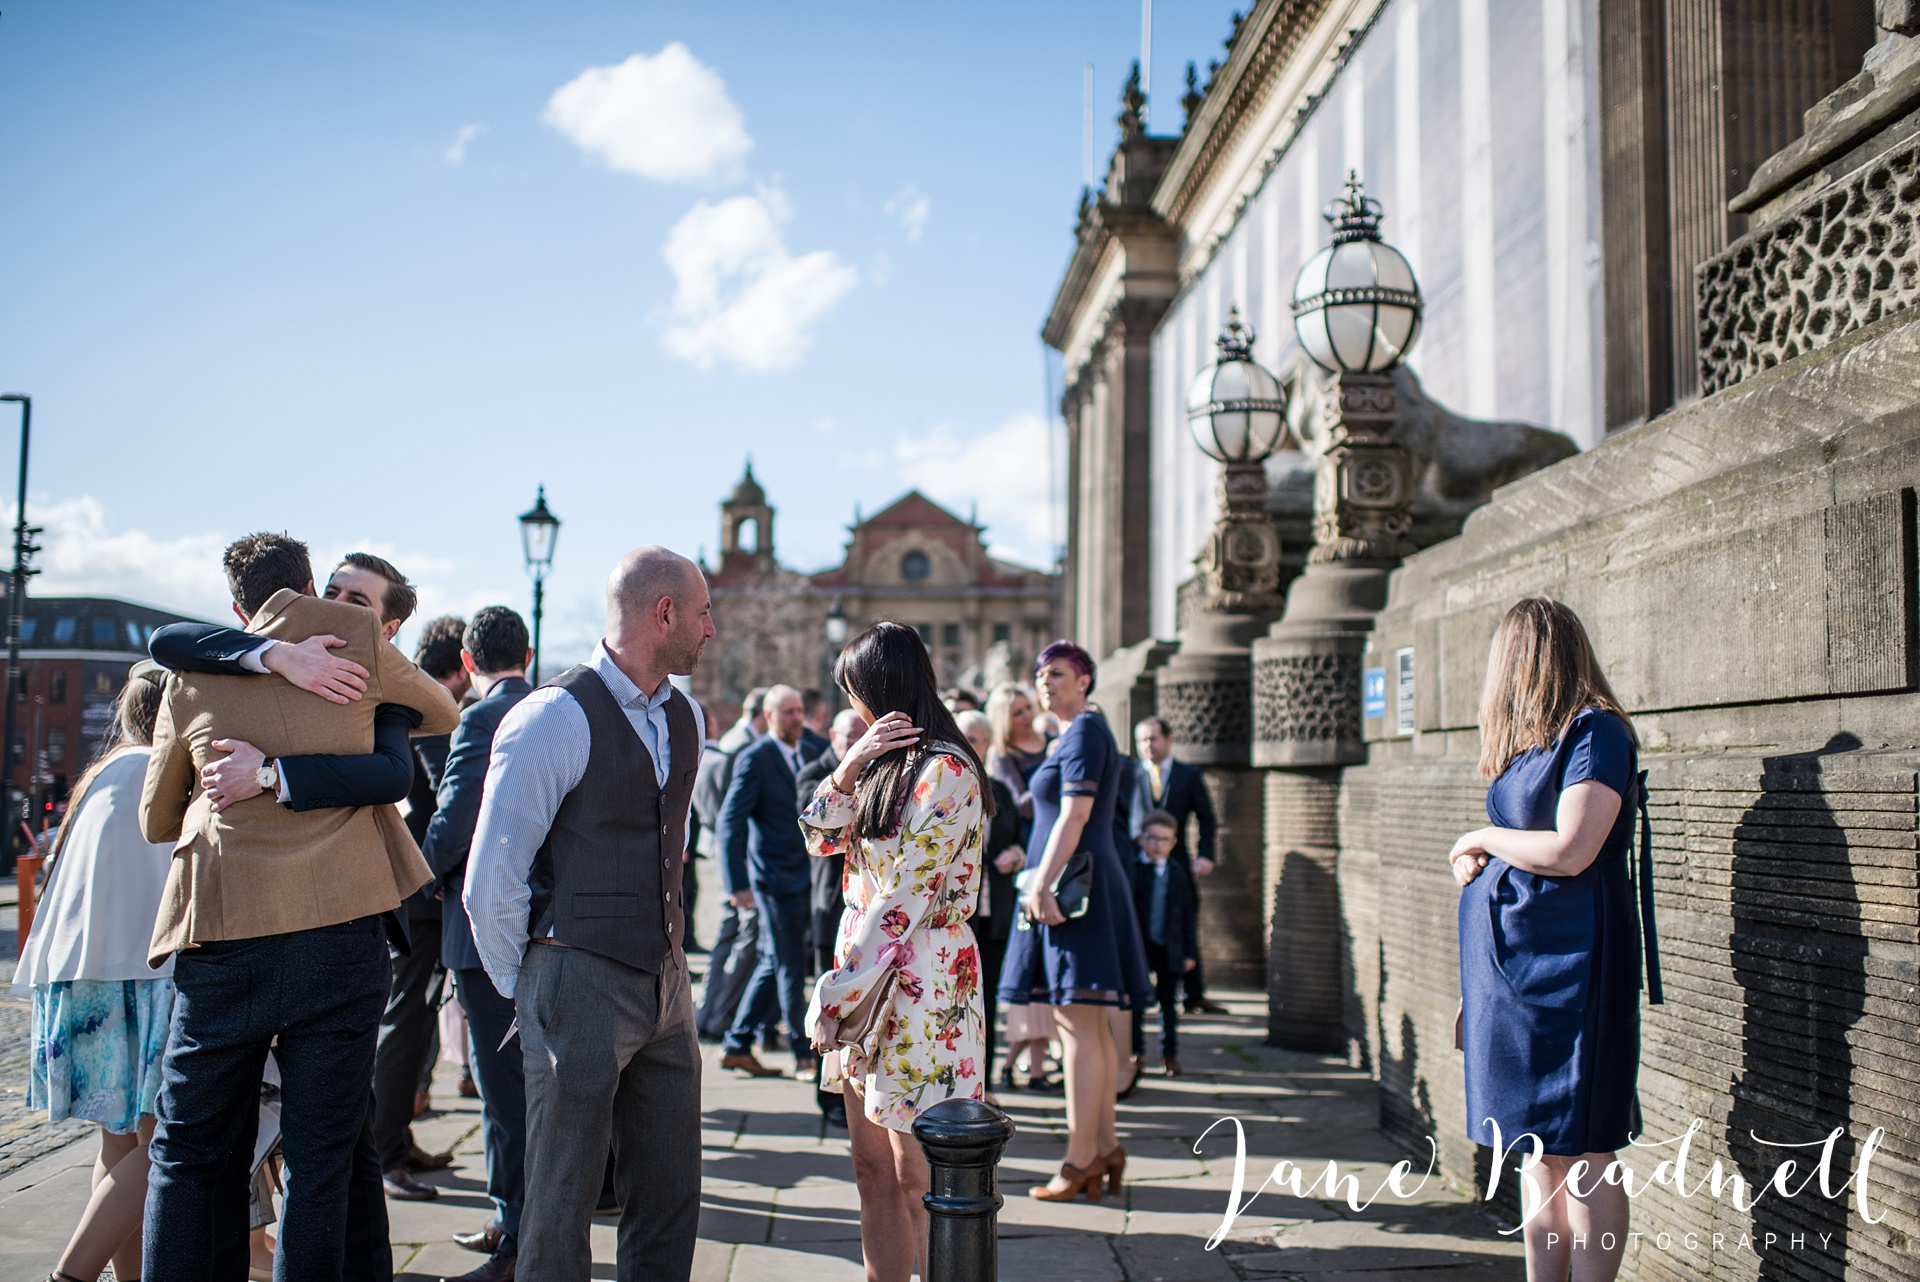 Wedding photography Cross Keys Leeds Wedding Jane Beadnell Photography_0011